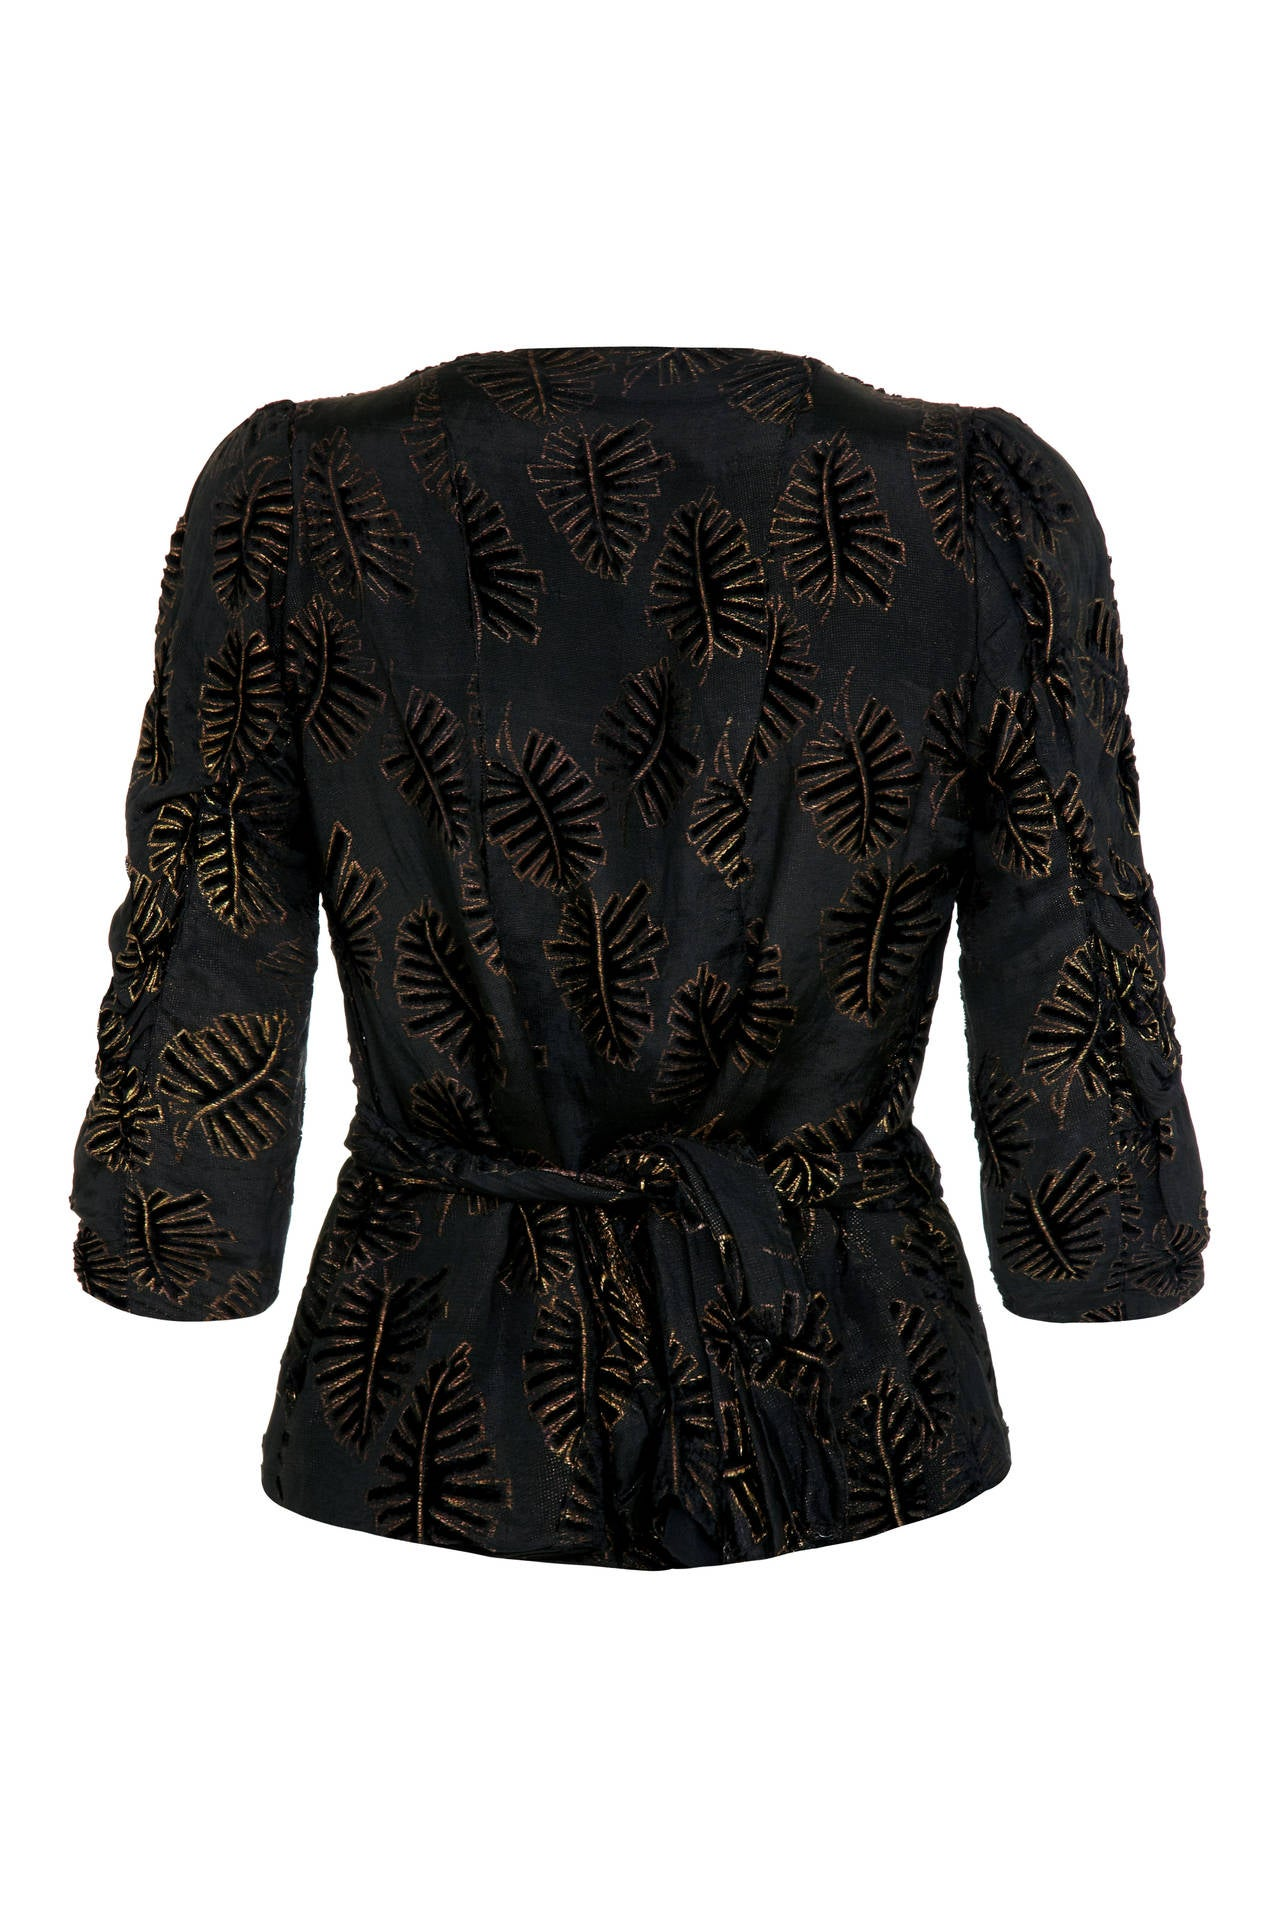 Simply stunning black and gold lame woven top with embossed black velvet leaf pattern.  This piece features ¾ sleeves and pretty matching scarf/ belt, which is attached at the shoulders of the V neckline, crosses over at the front and wraps around